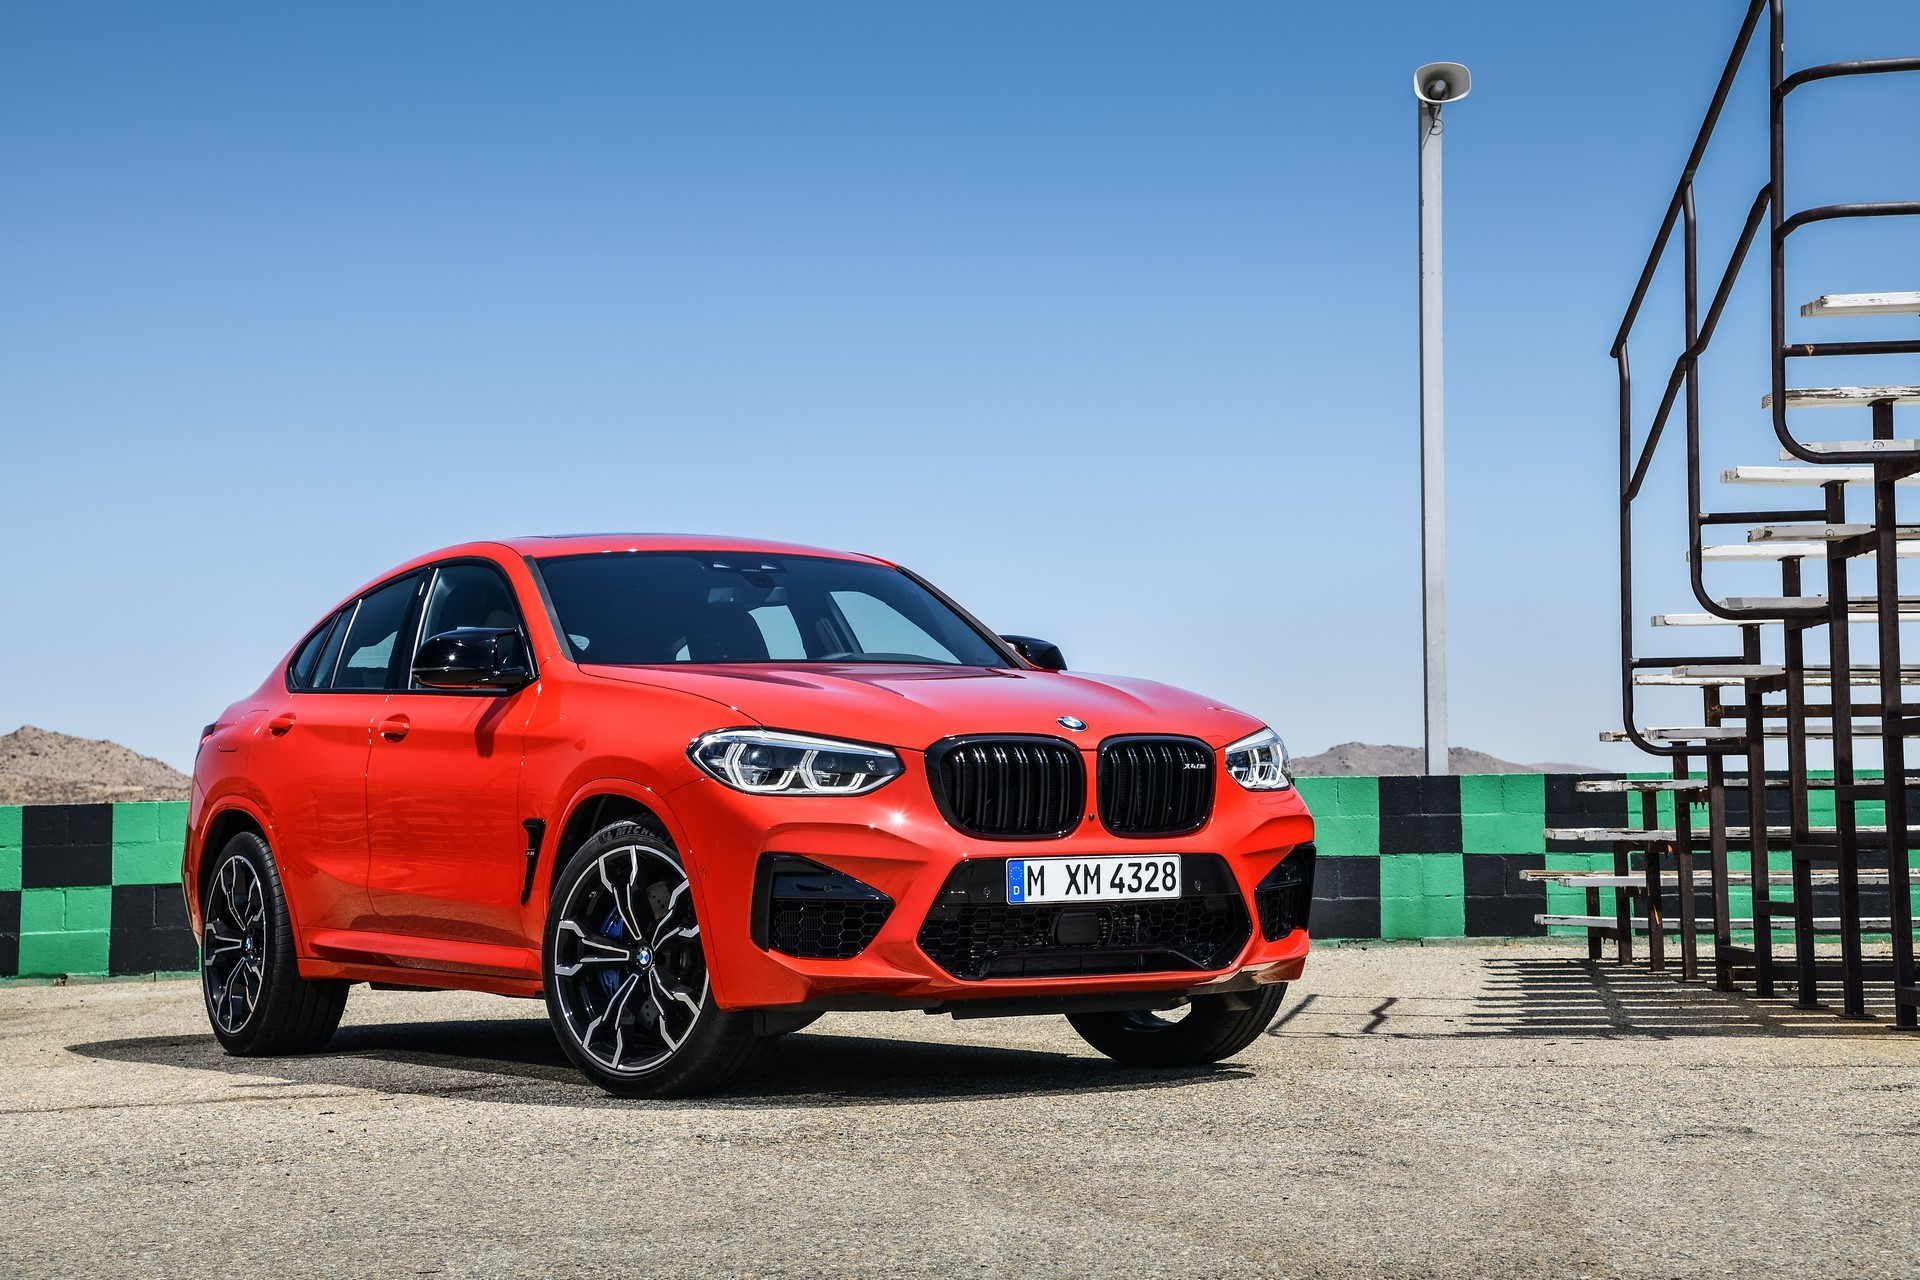 BMW X3 M and X4 M 2019 (70)